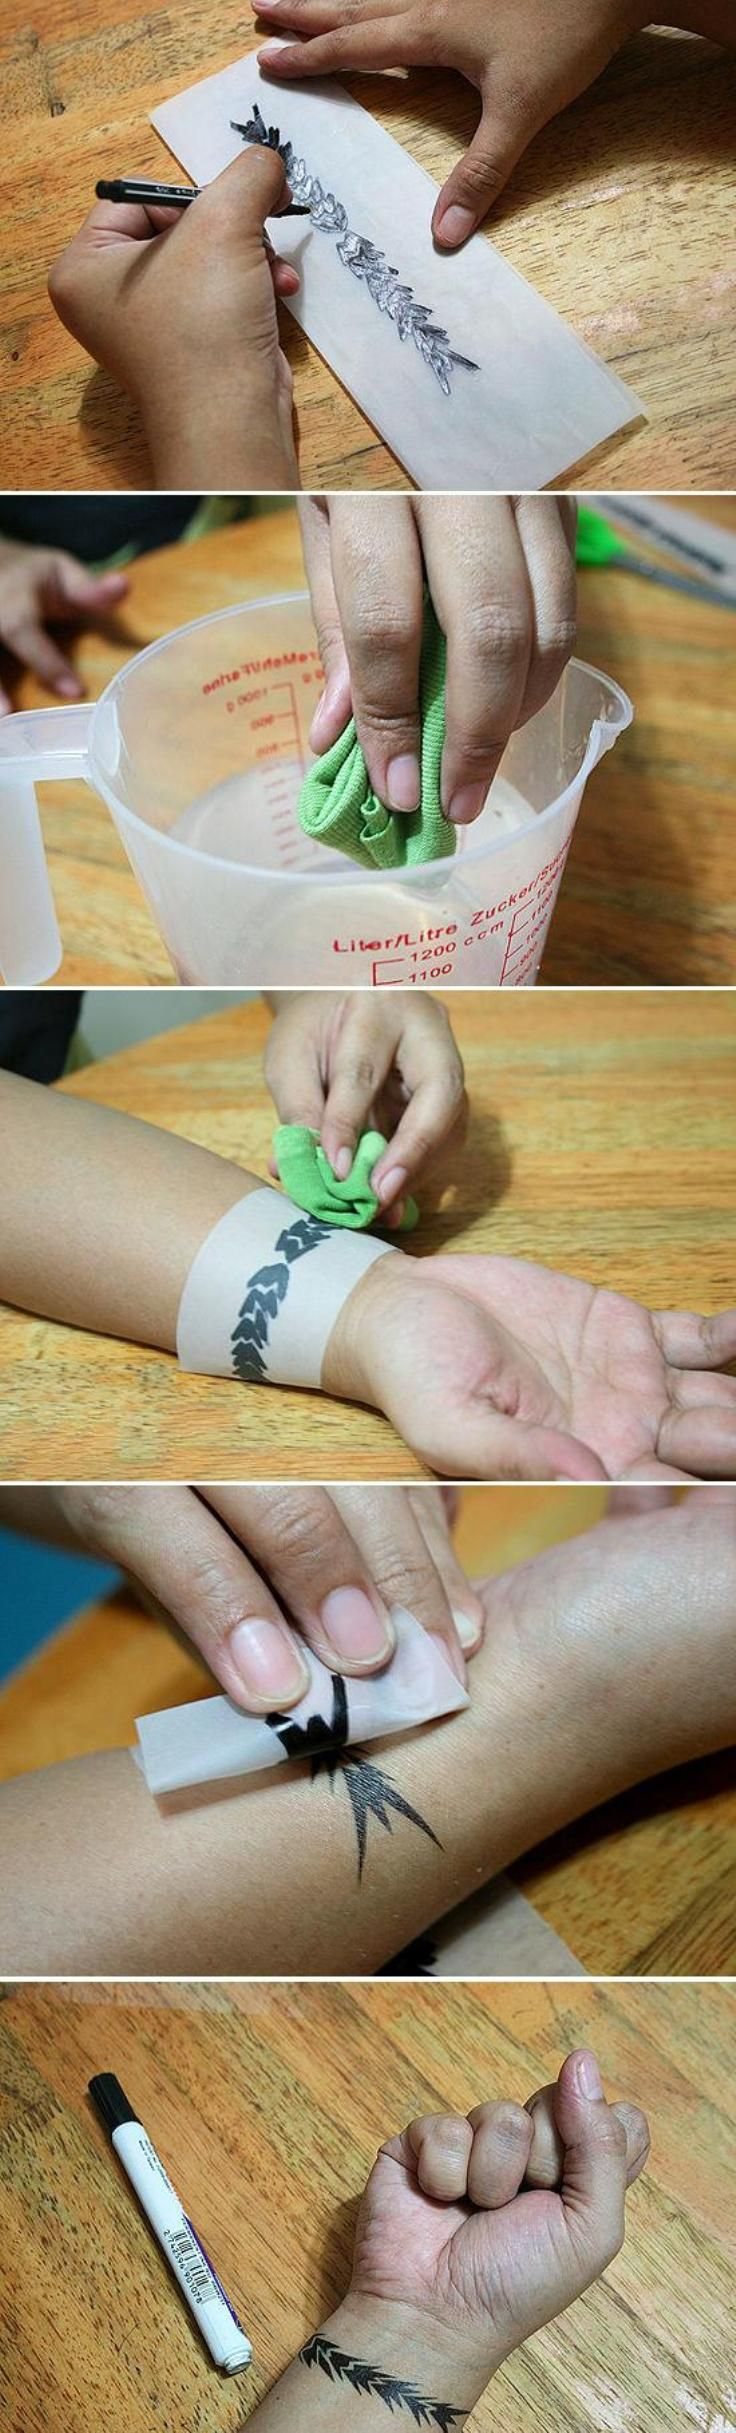 DIY Temporary Tattoo For kids DIY Tattoo Kids